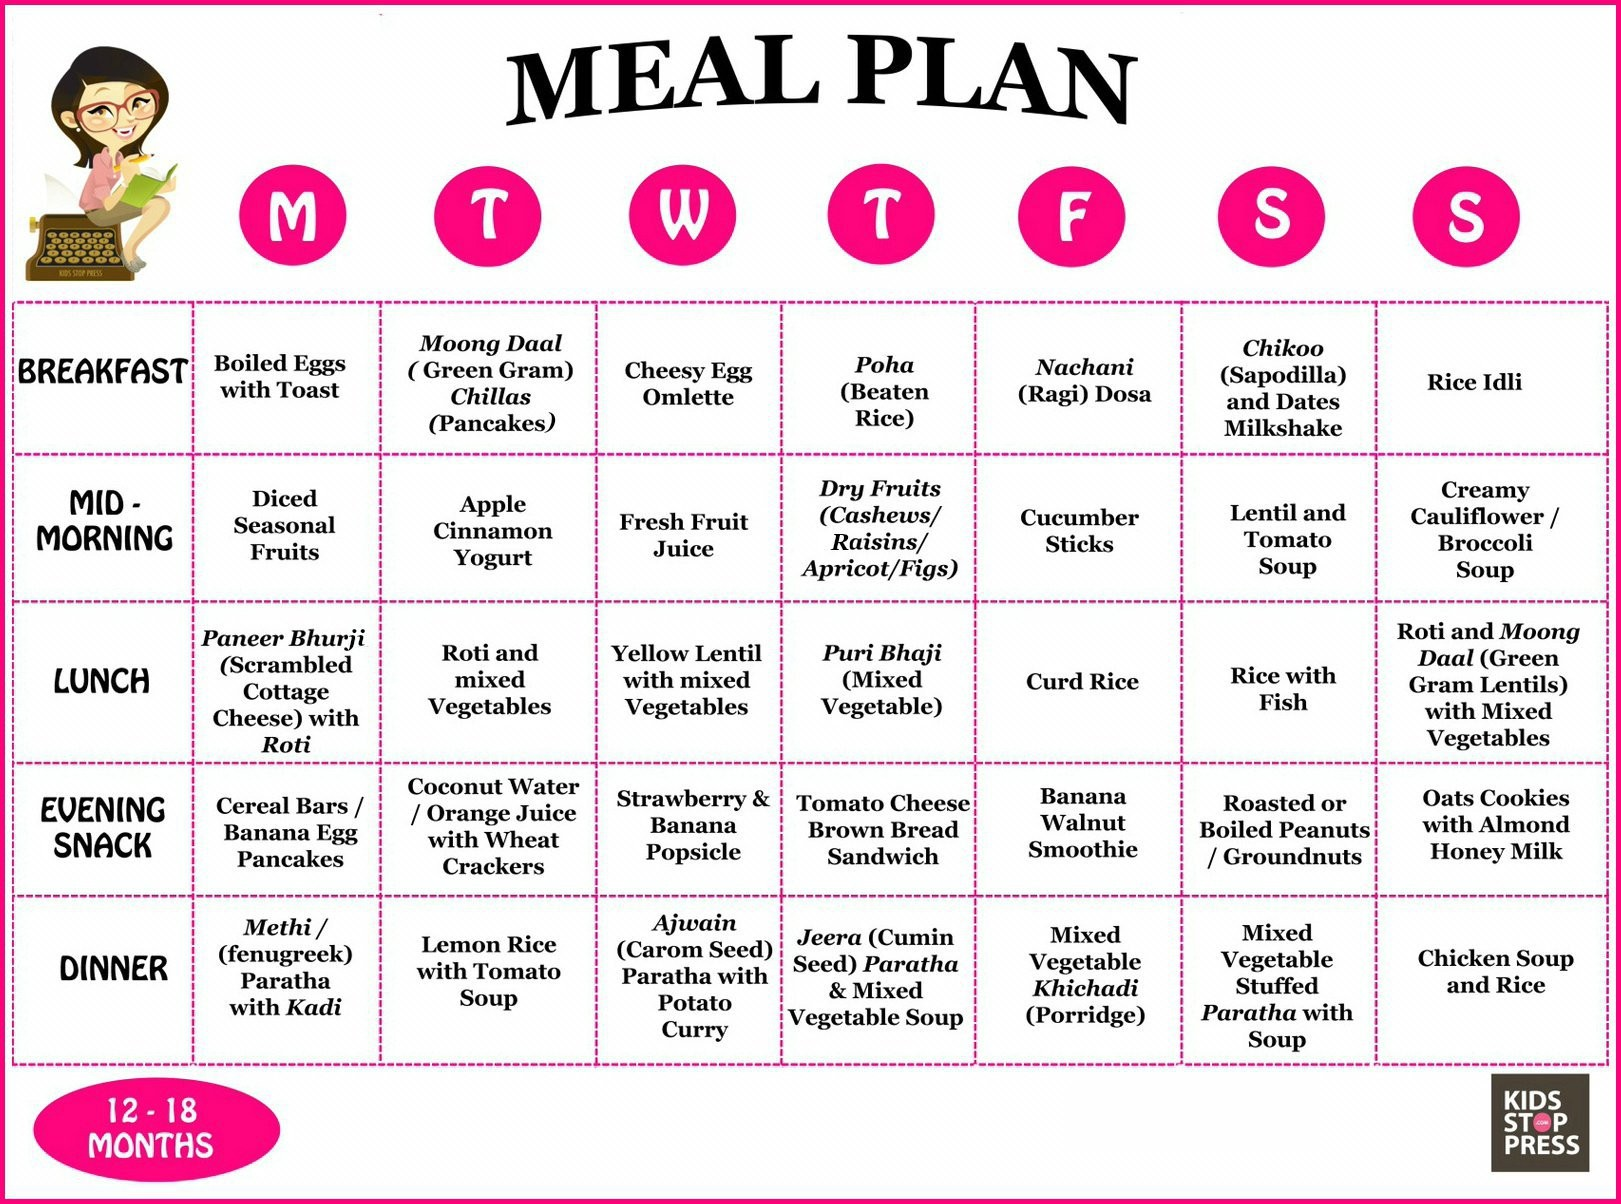 sample eating plan for 12 month old  Diet Food For 12 Year Old - Diet Plan - sample eating plan for 12 month old